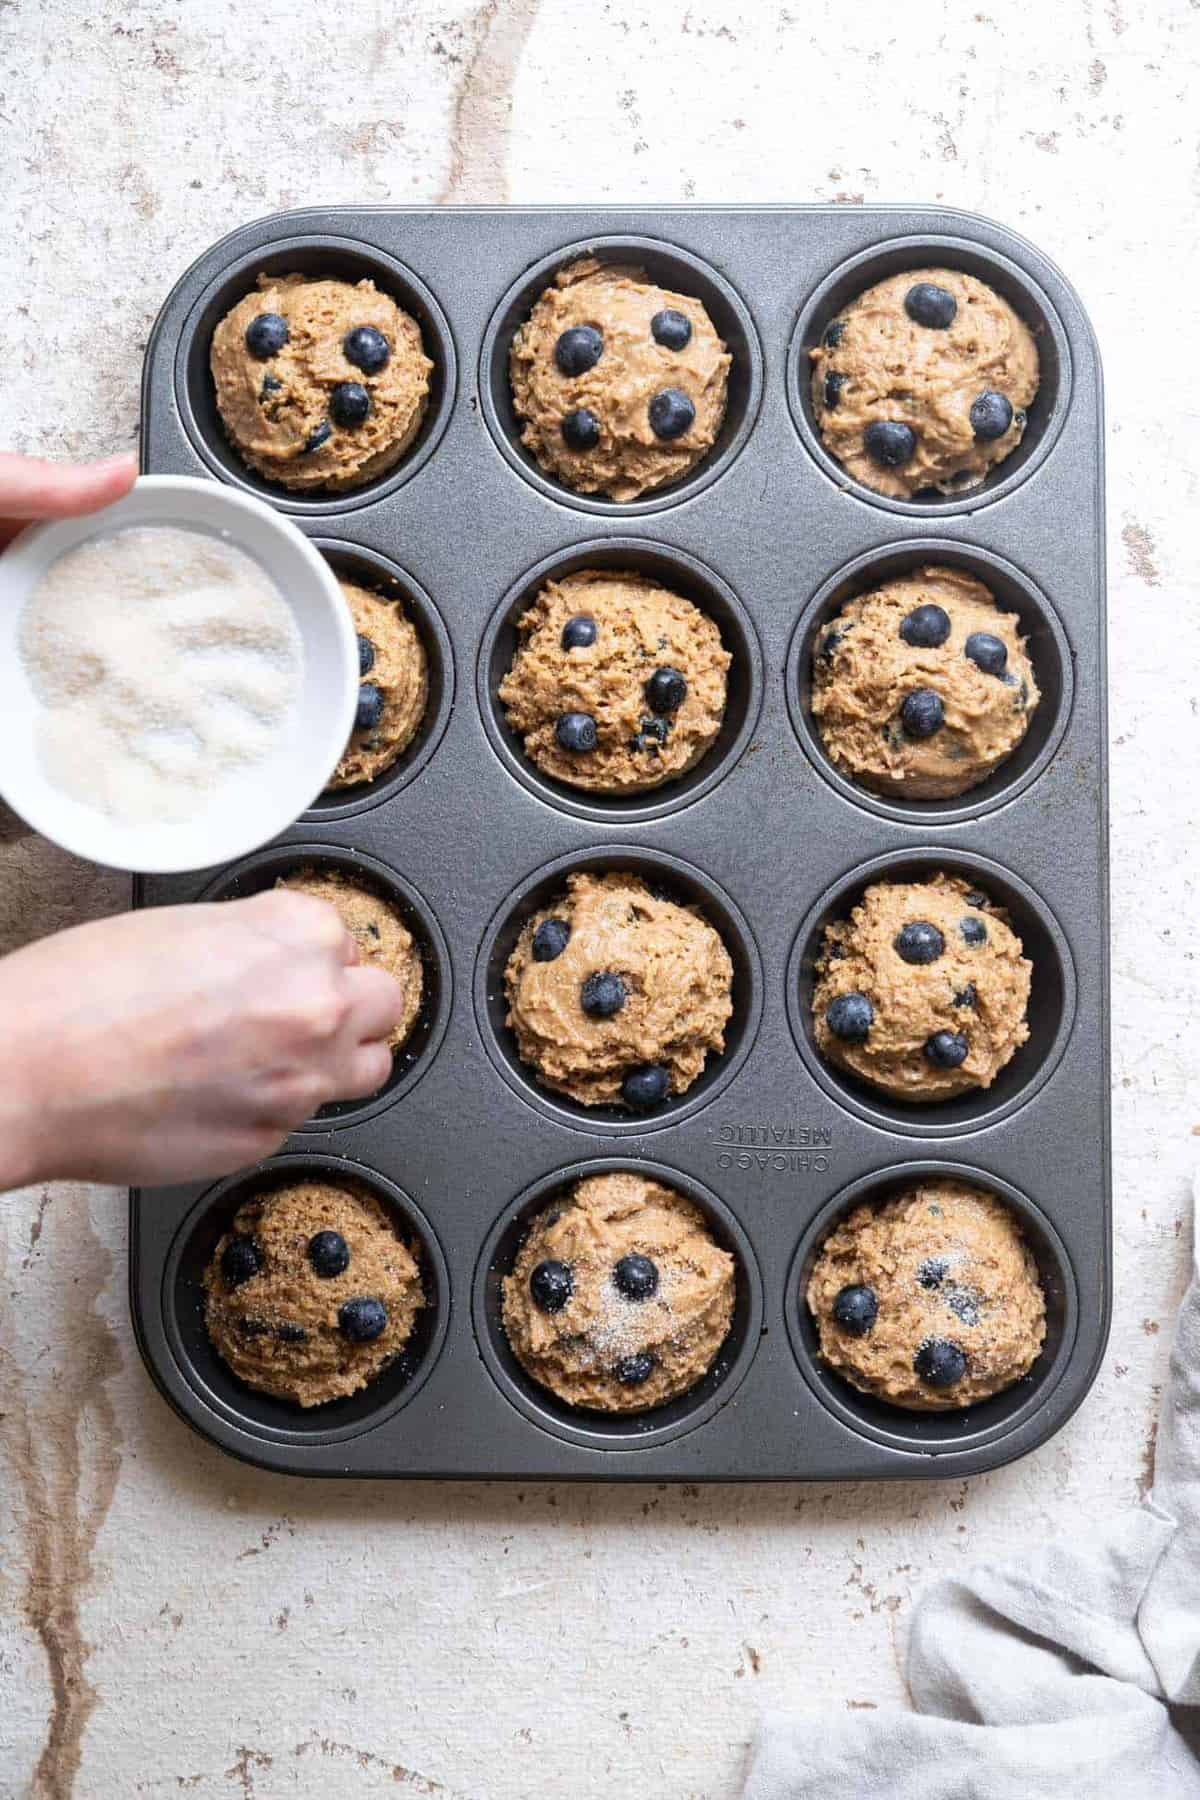 Making a healthy blueberry muffin recipe